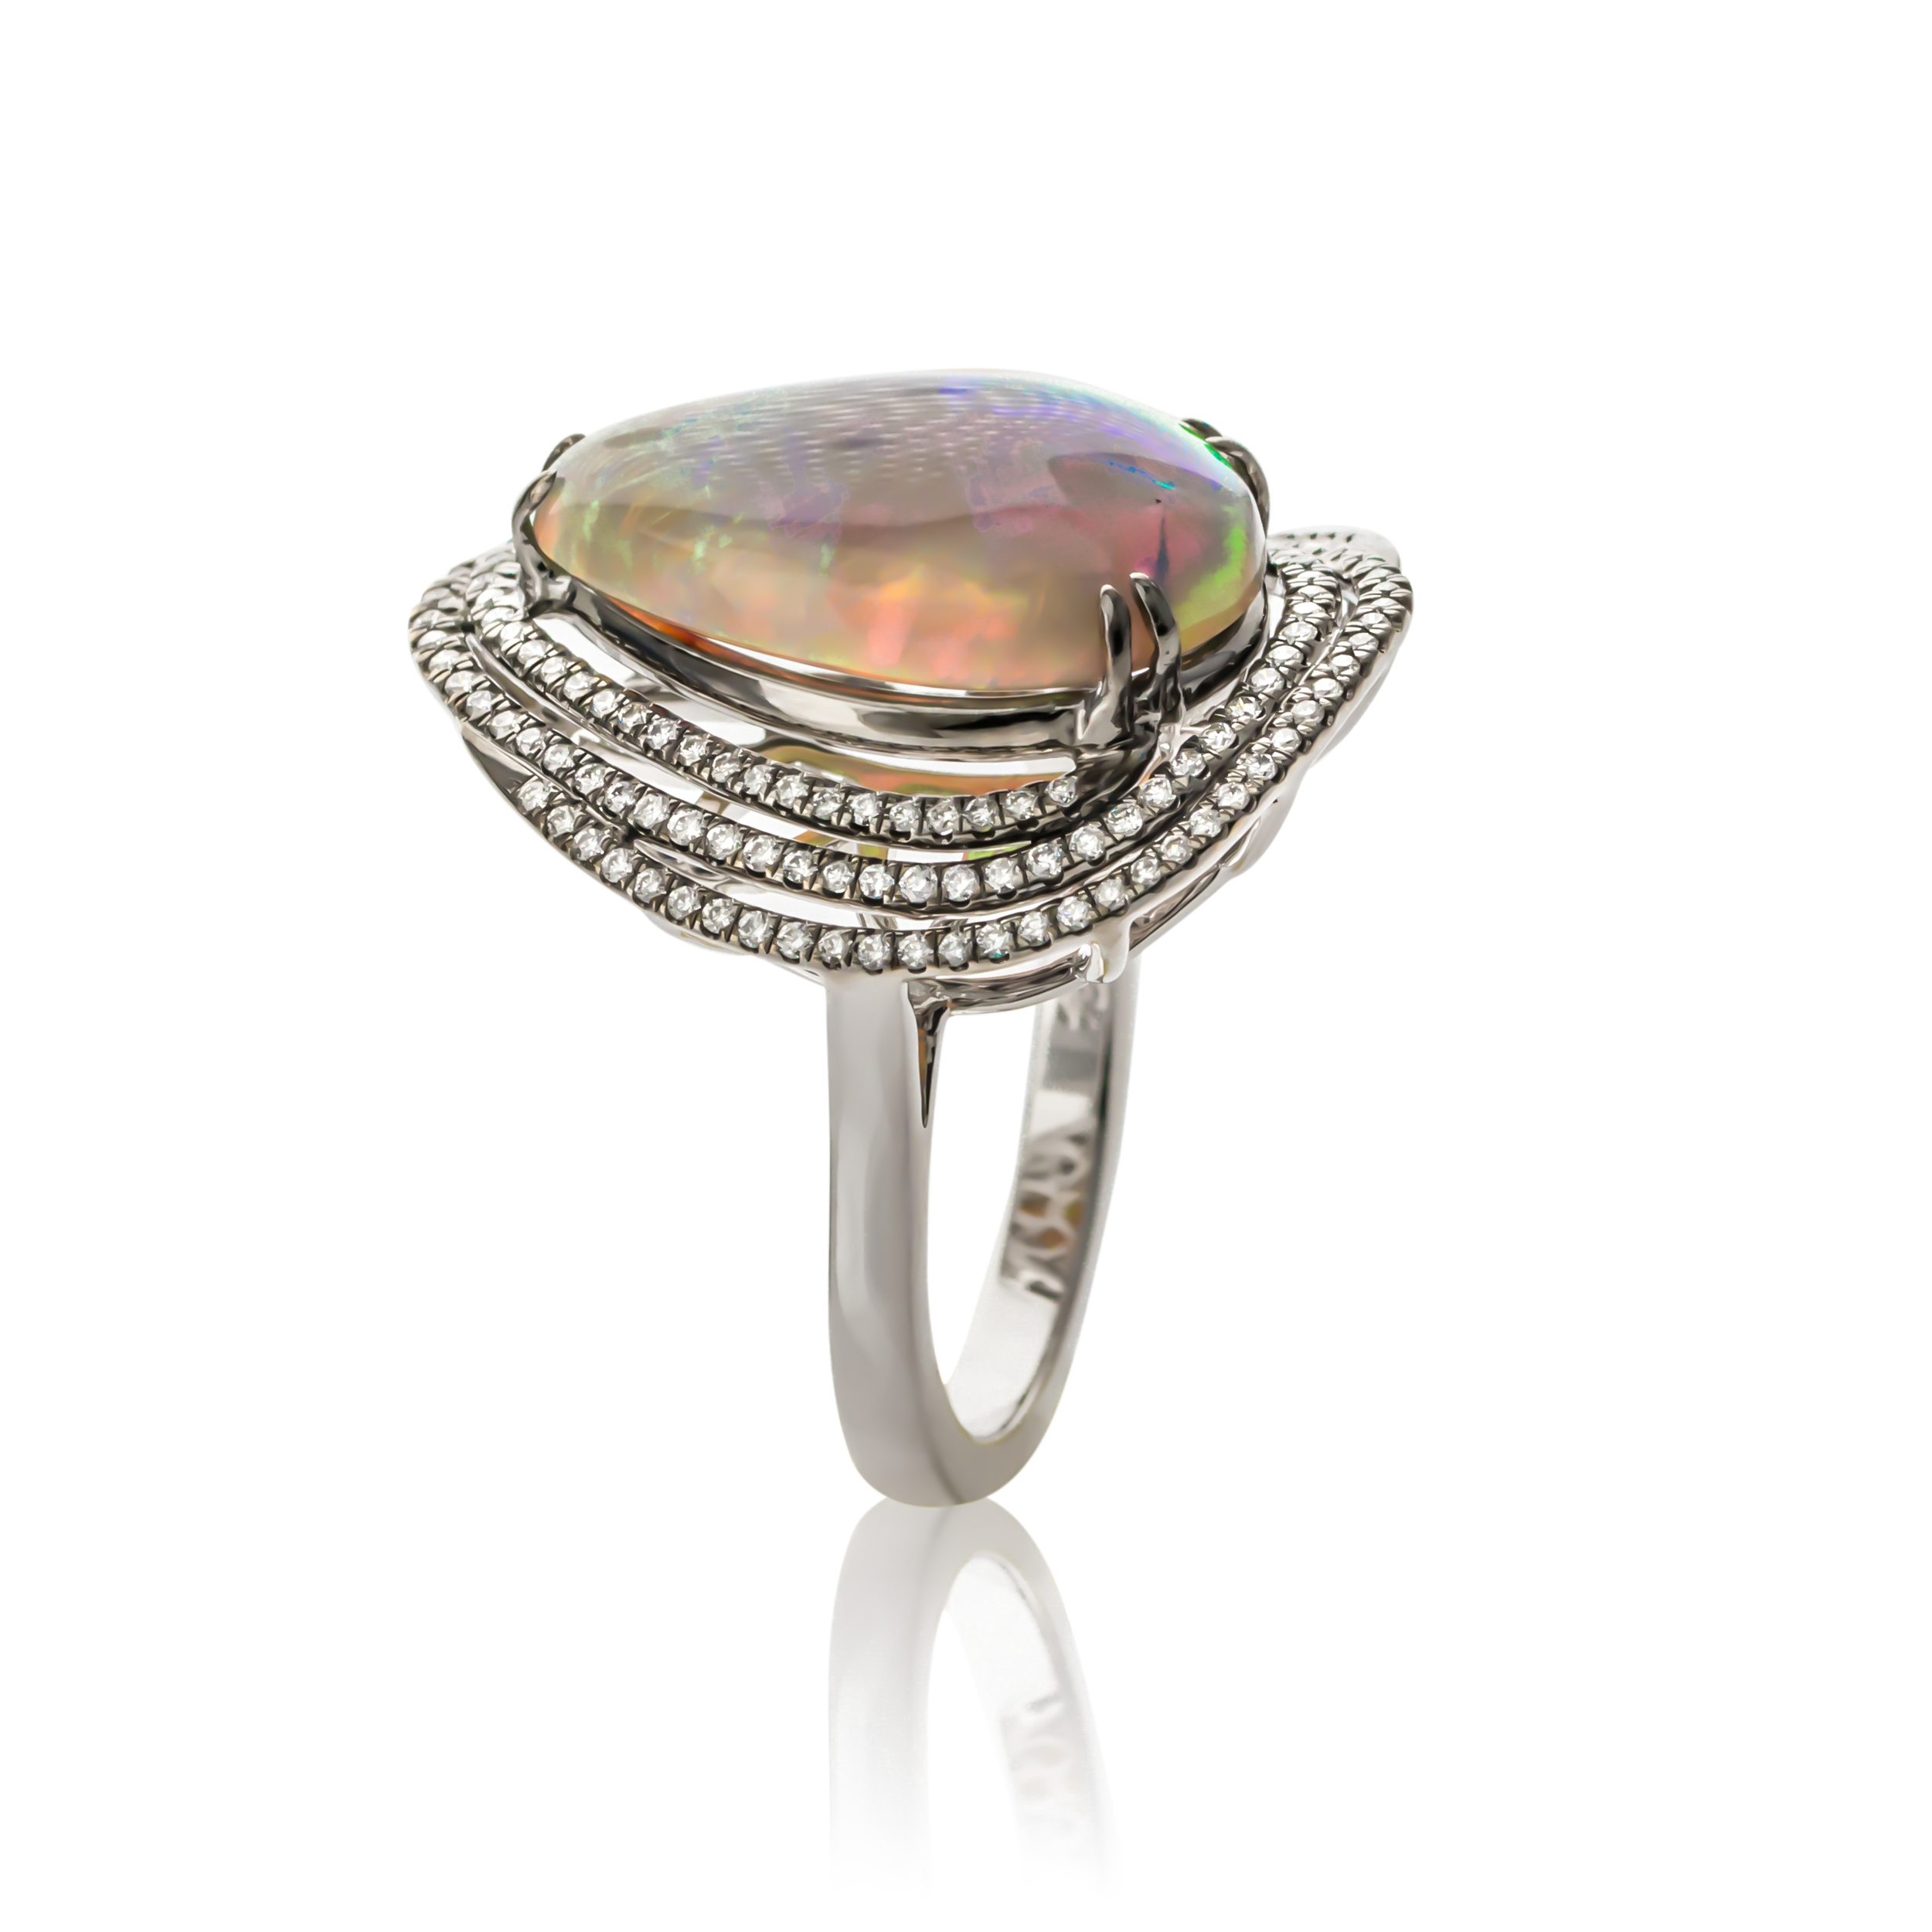 CUSTOM LIGHTNING RIDGE OPAL AND DIAMOND RING